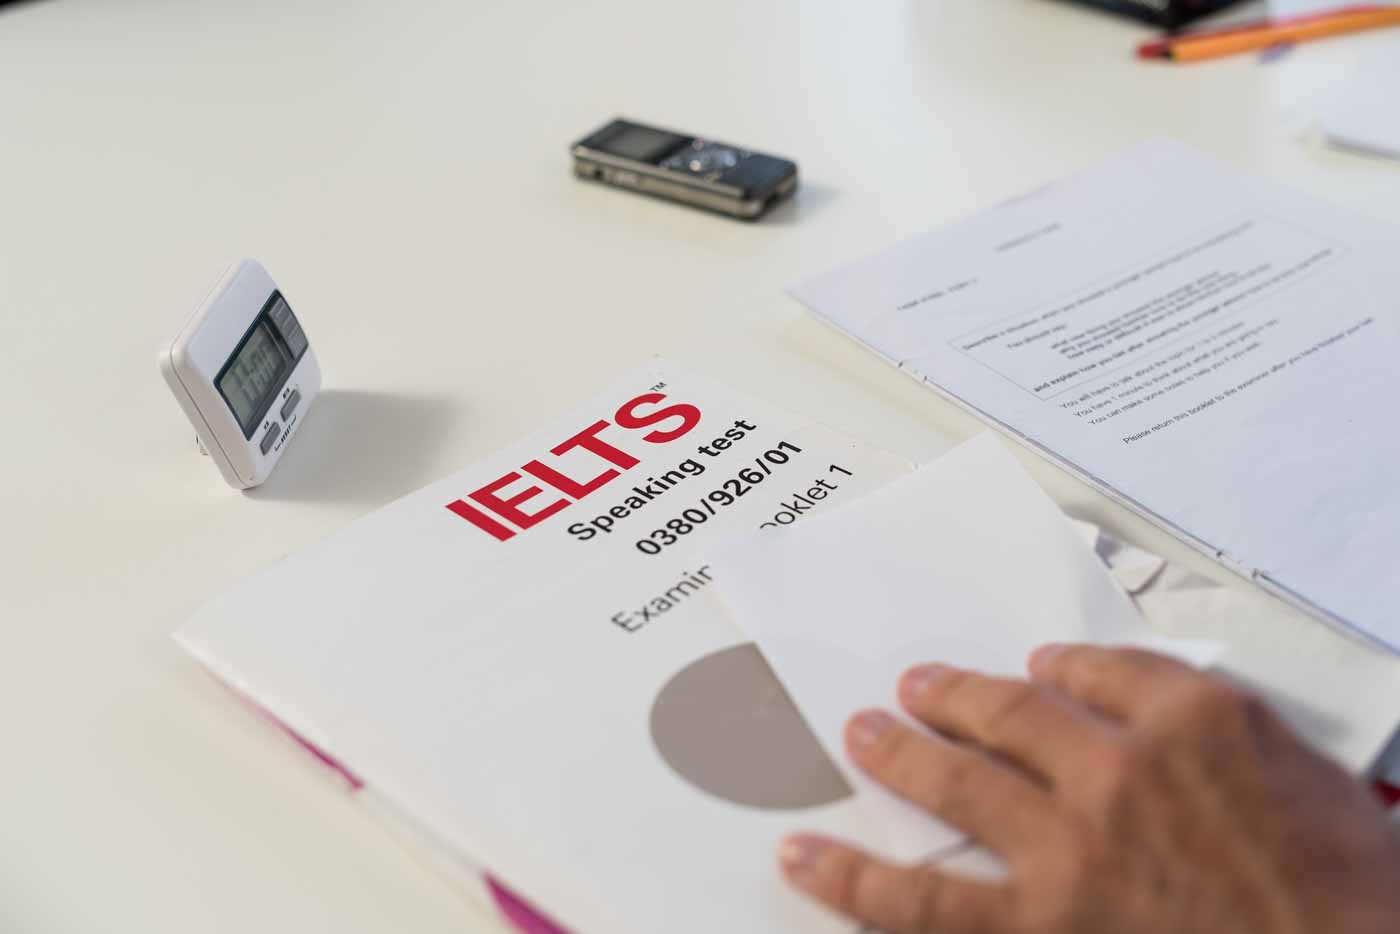 Most important aspects of the IELTS test